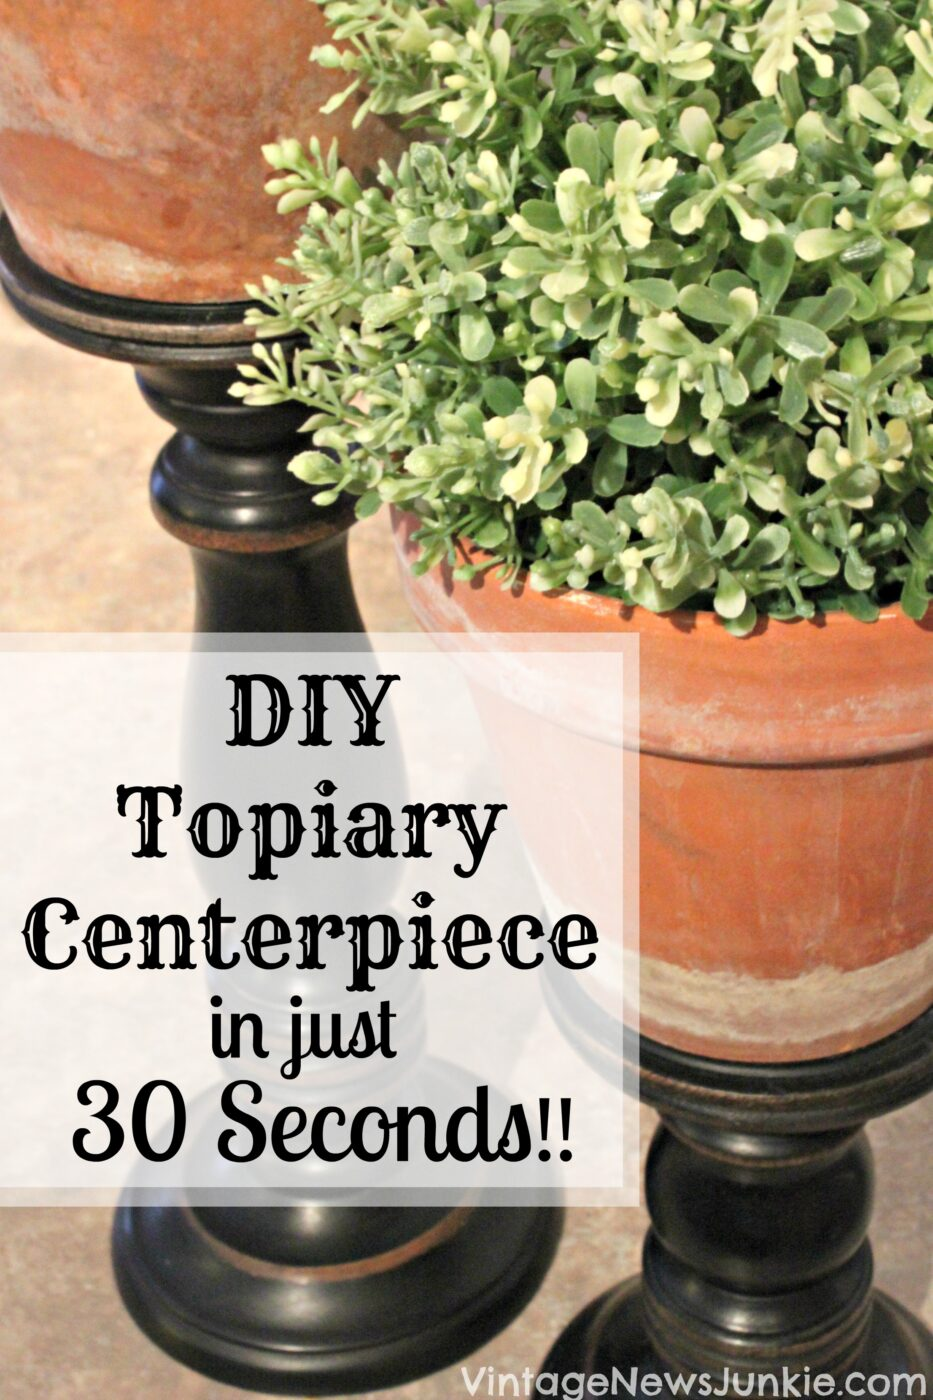 DIY Topiary Centerpiece in just 30 Seconds! | 25+ May Day ideas